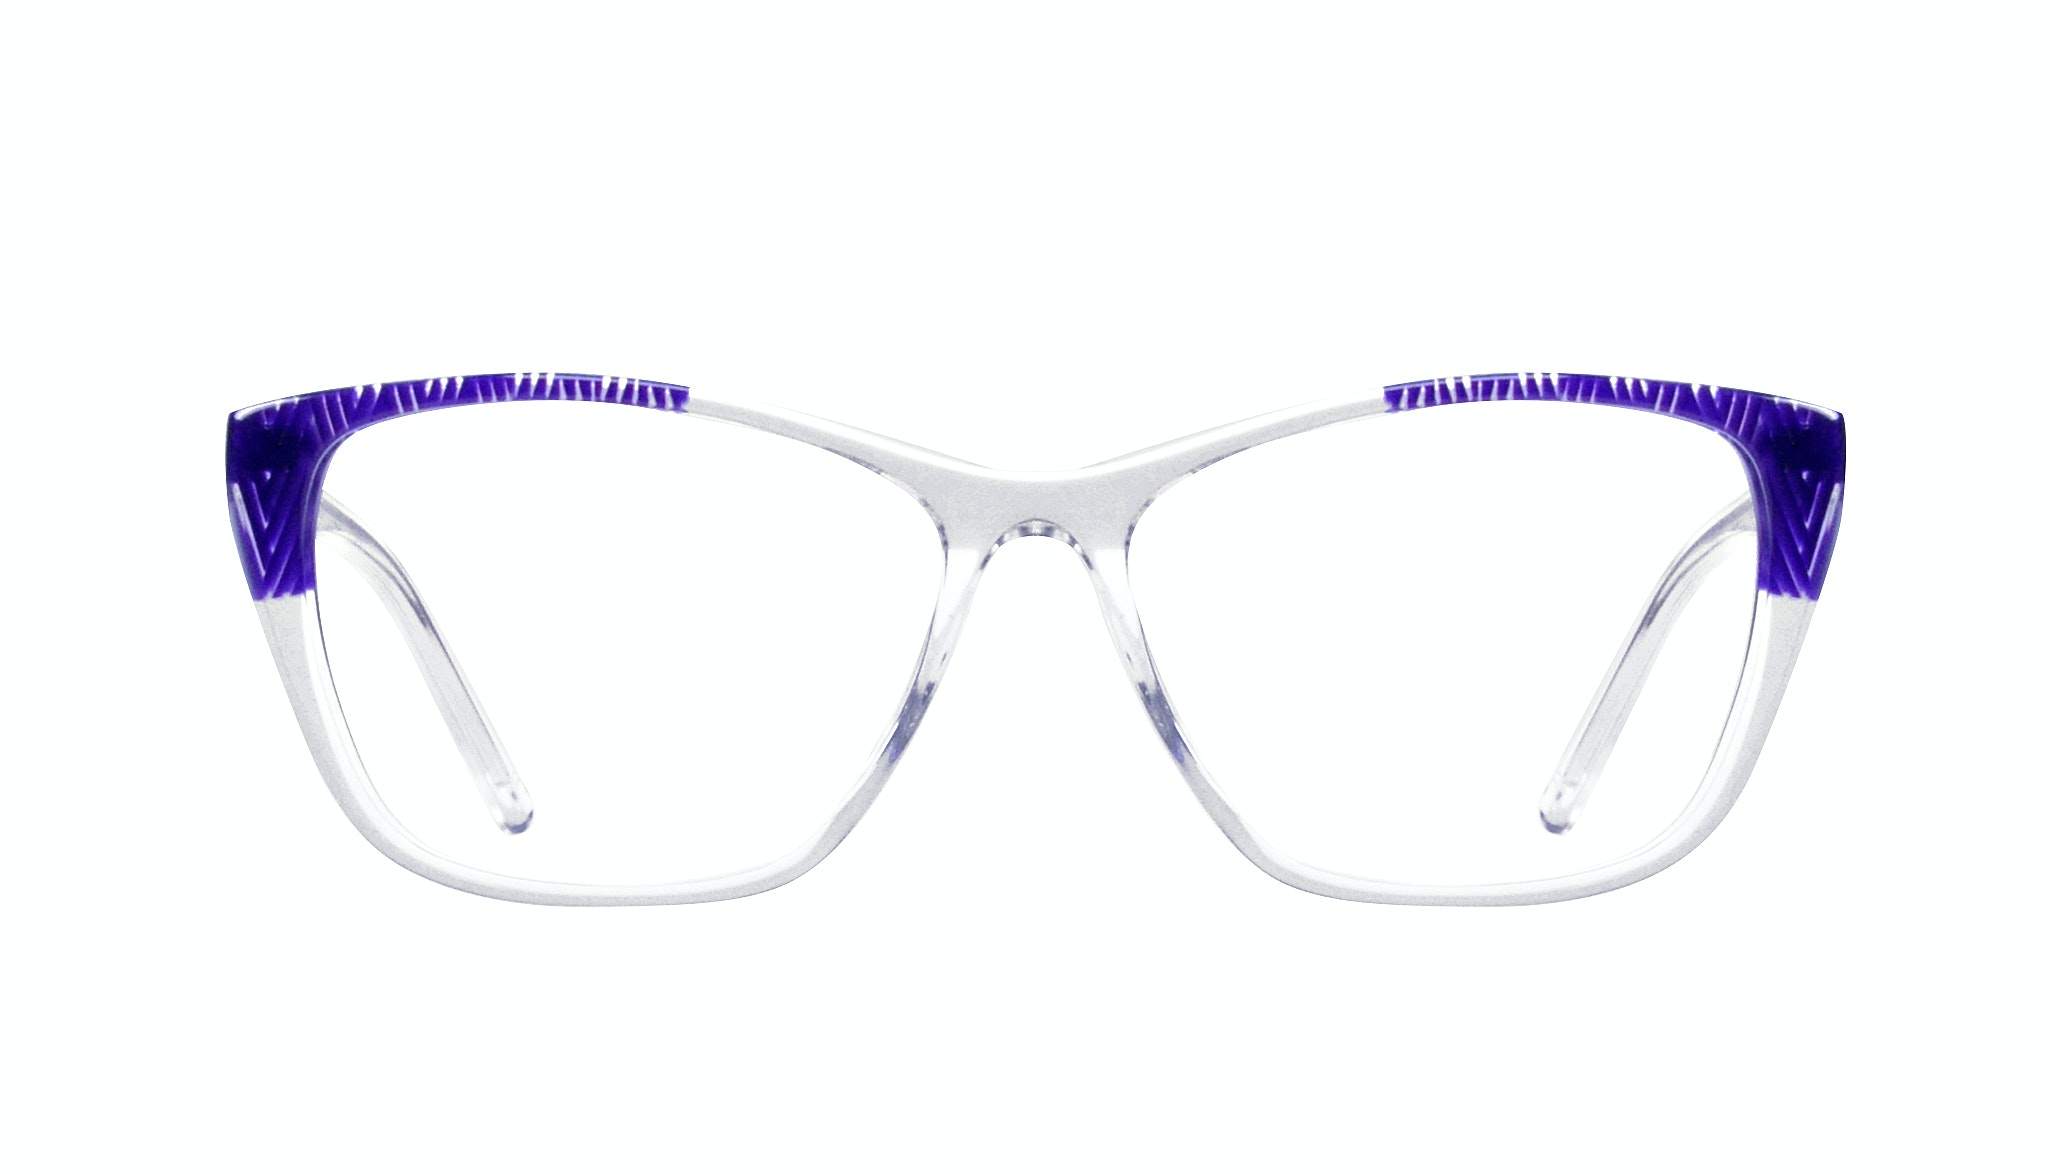 Affordable Fashion Glasses Cat Eye Rectangle Eyeglasses Women Myrtle Diamond Violet